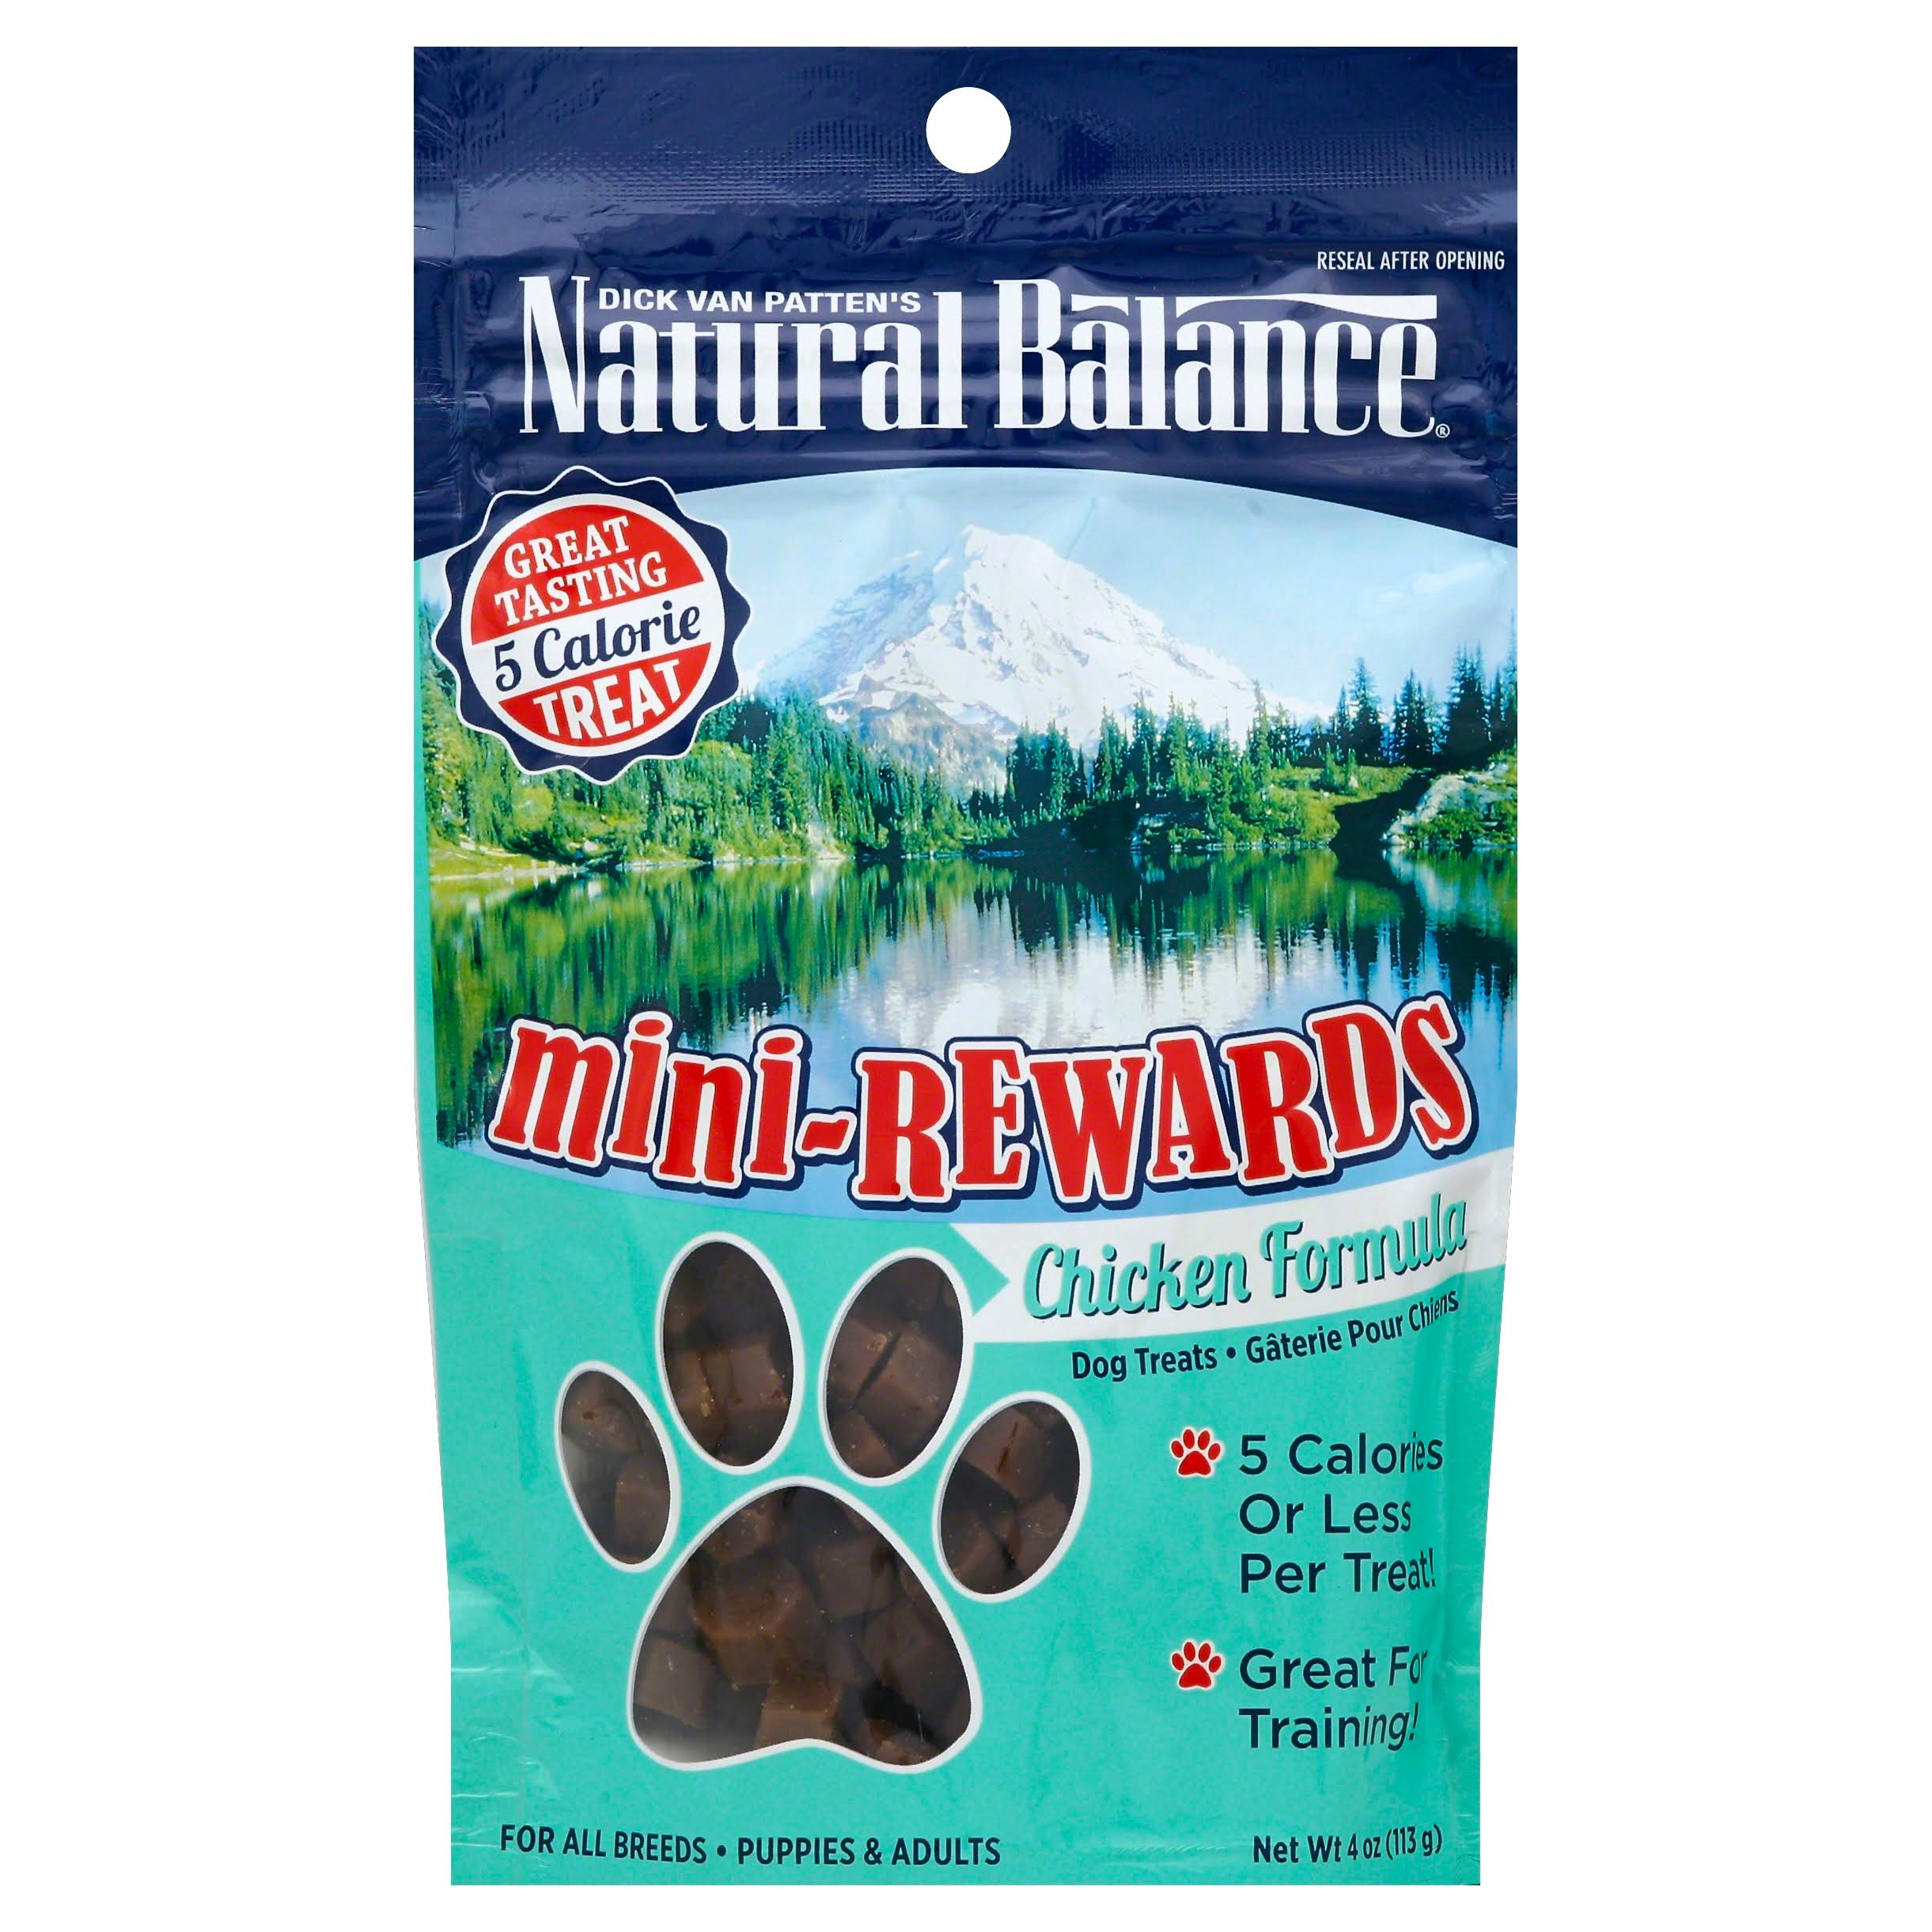 Natural Balance Mini Rewards Chicken Formula Dog Treat - 4oz